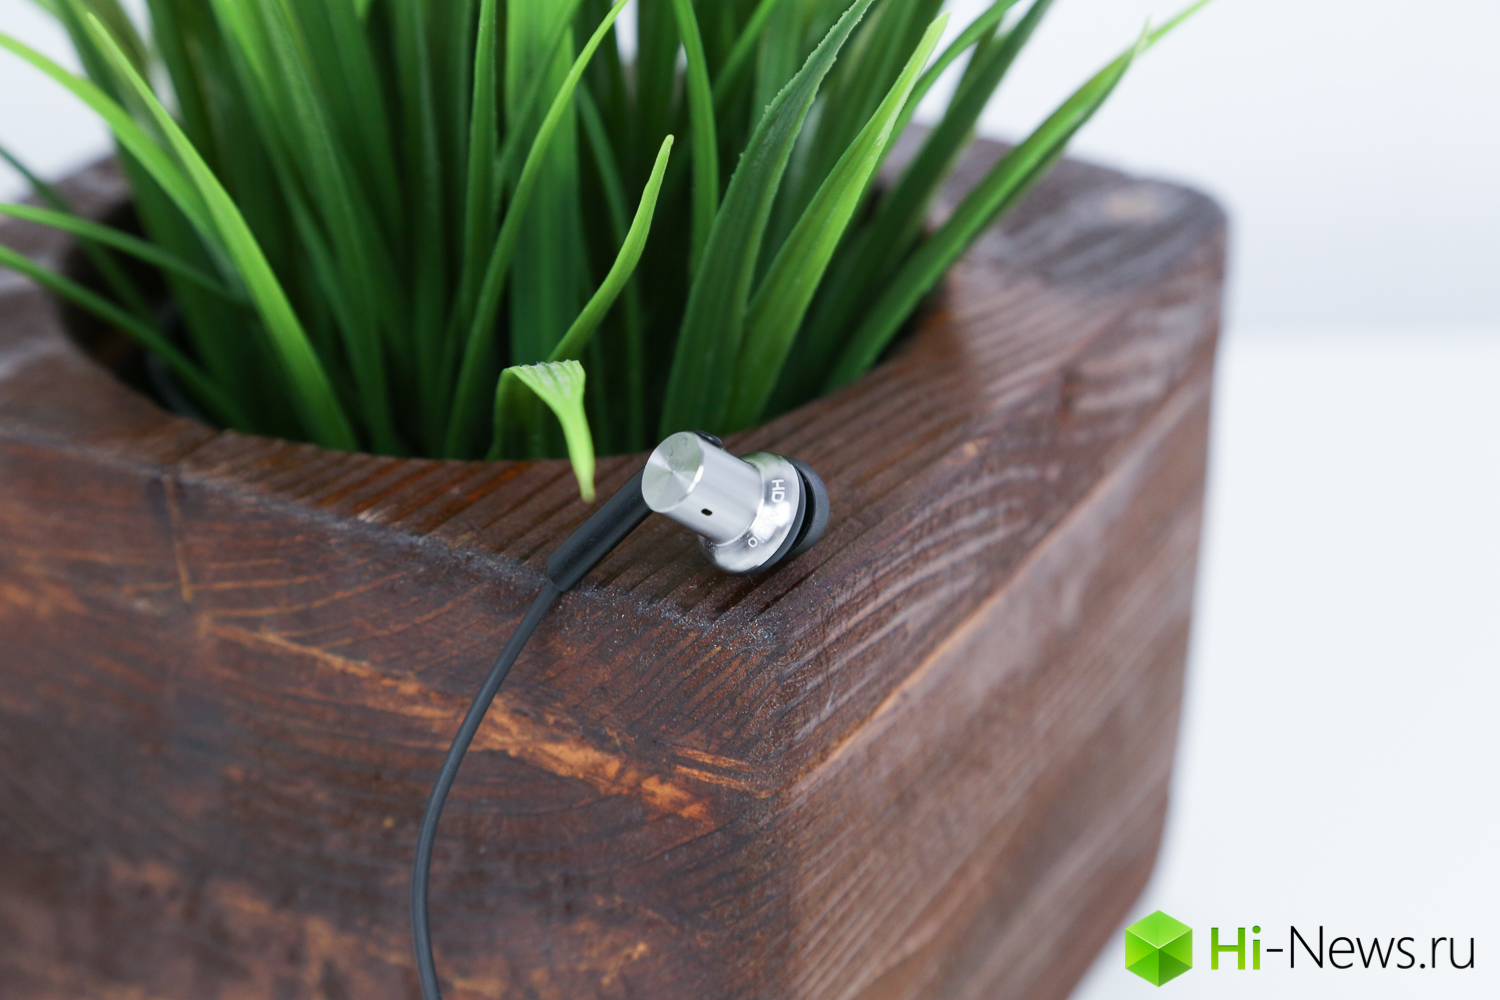 Xiaomi Hybrid headphones, which many were waiting for